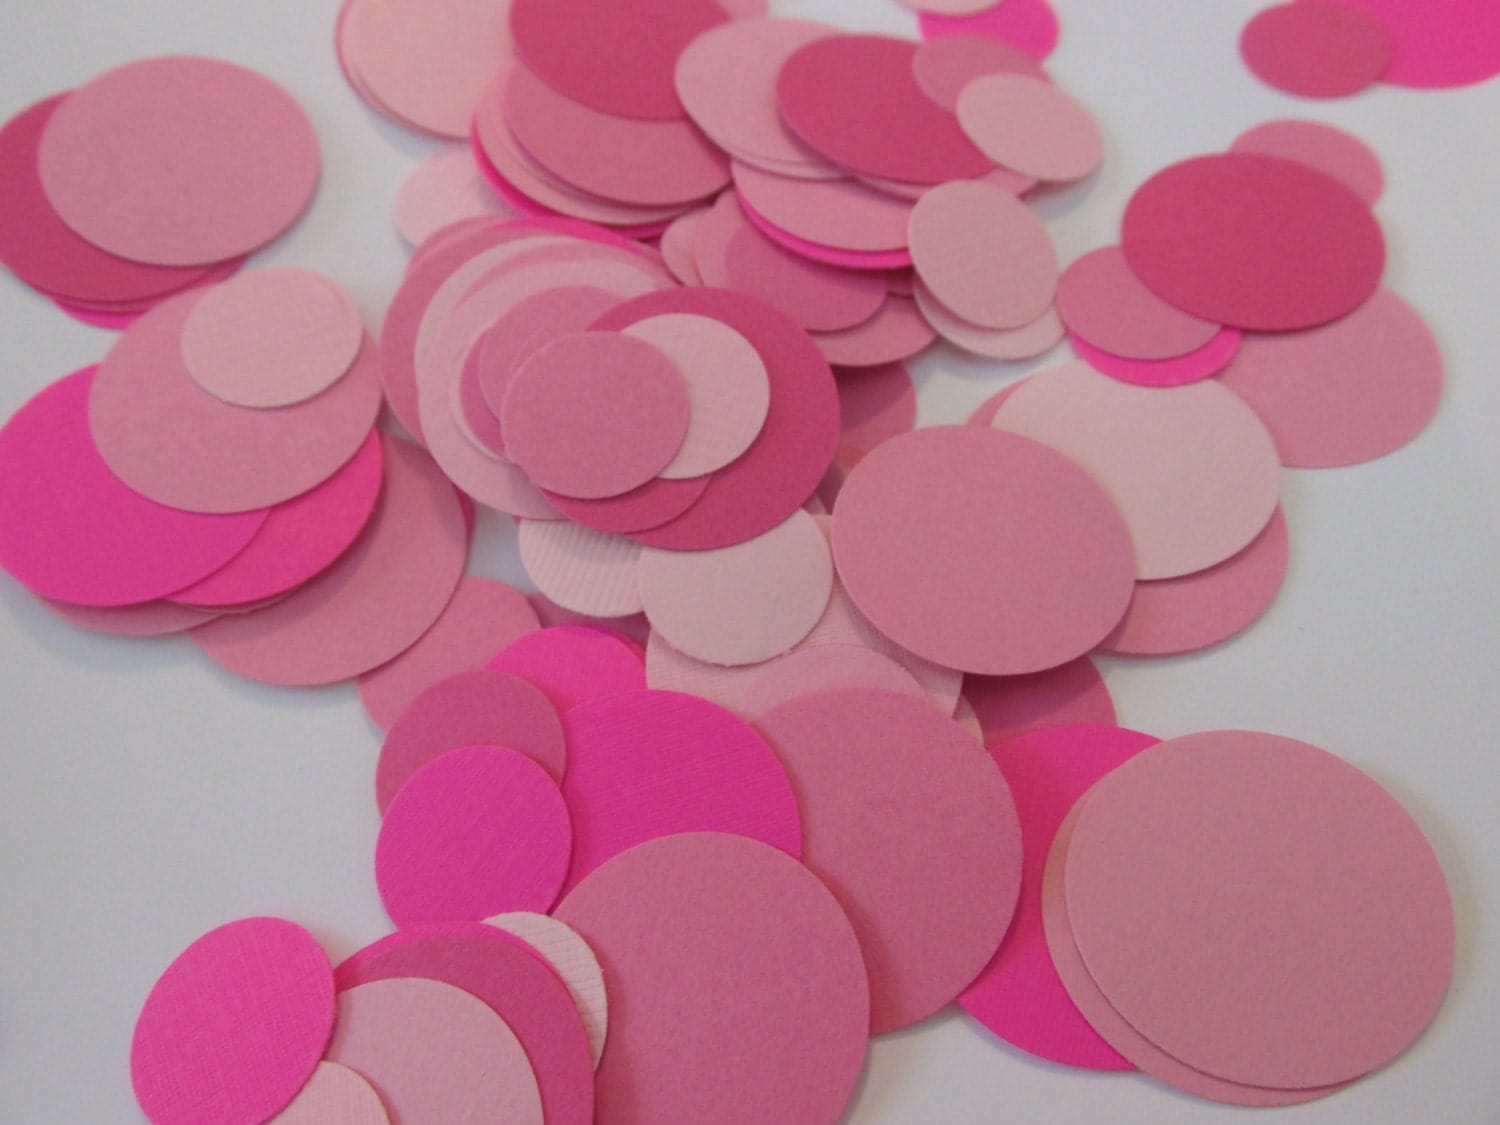 pink confetti baby shower confetti paper by scrapstarz on etsy